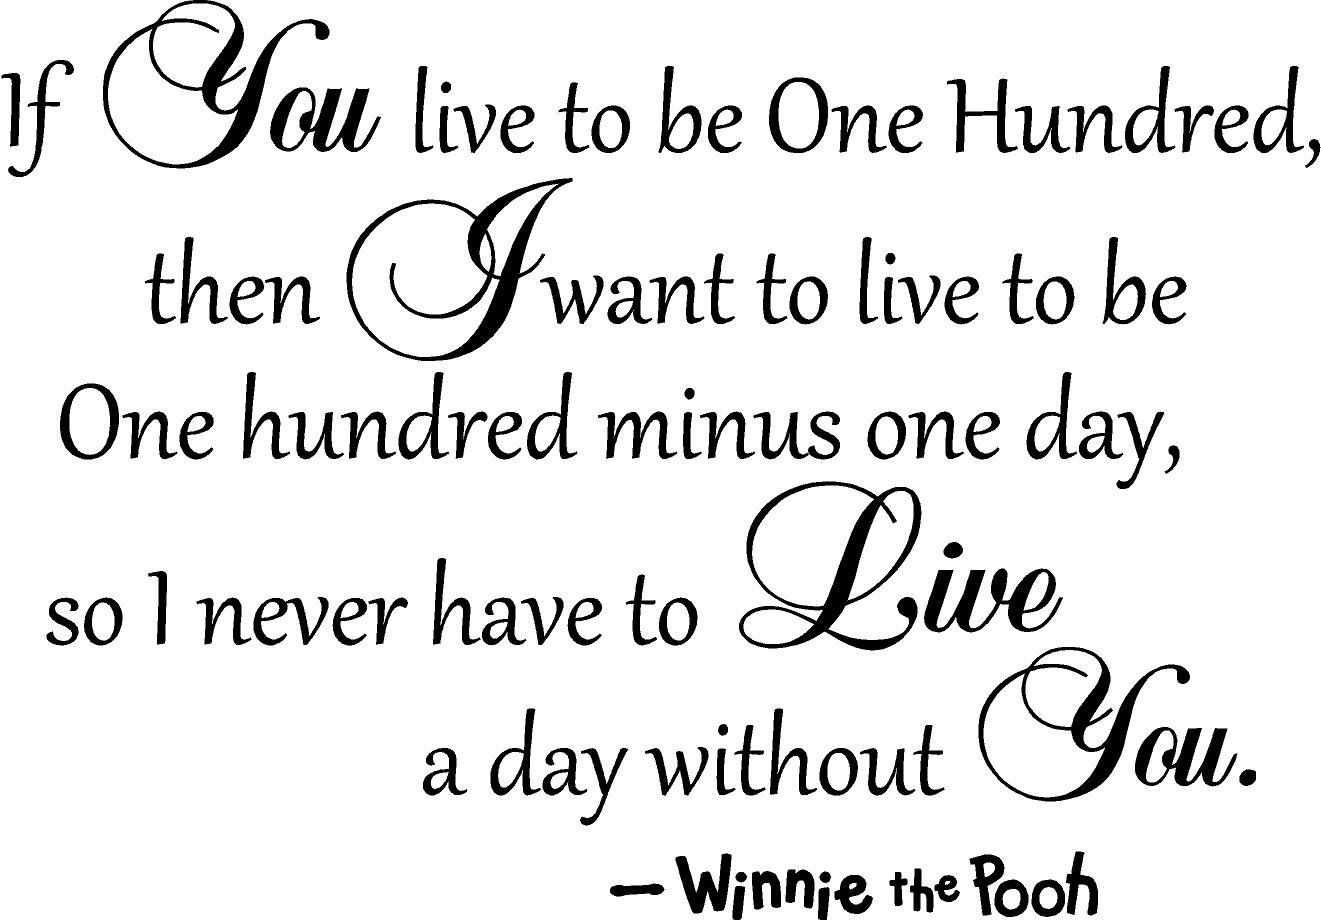 winnie the pooh quotes 6